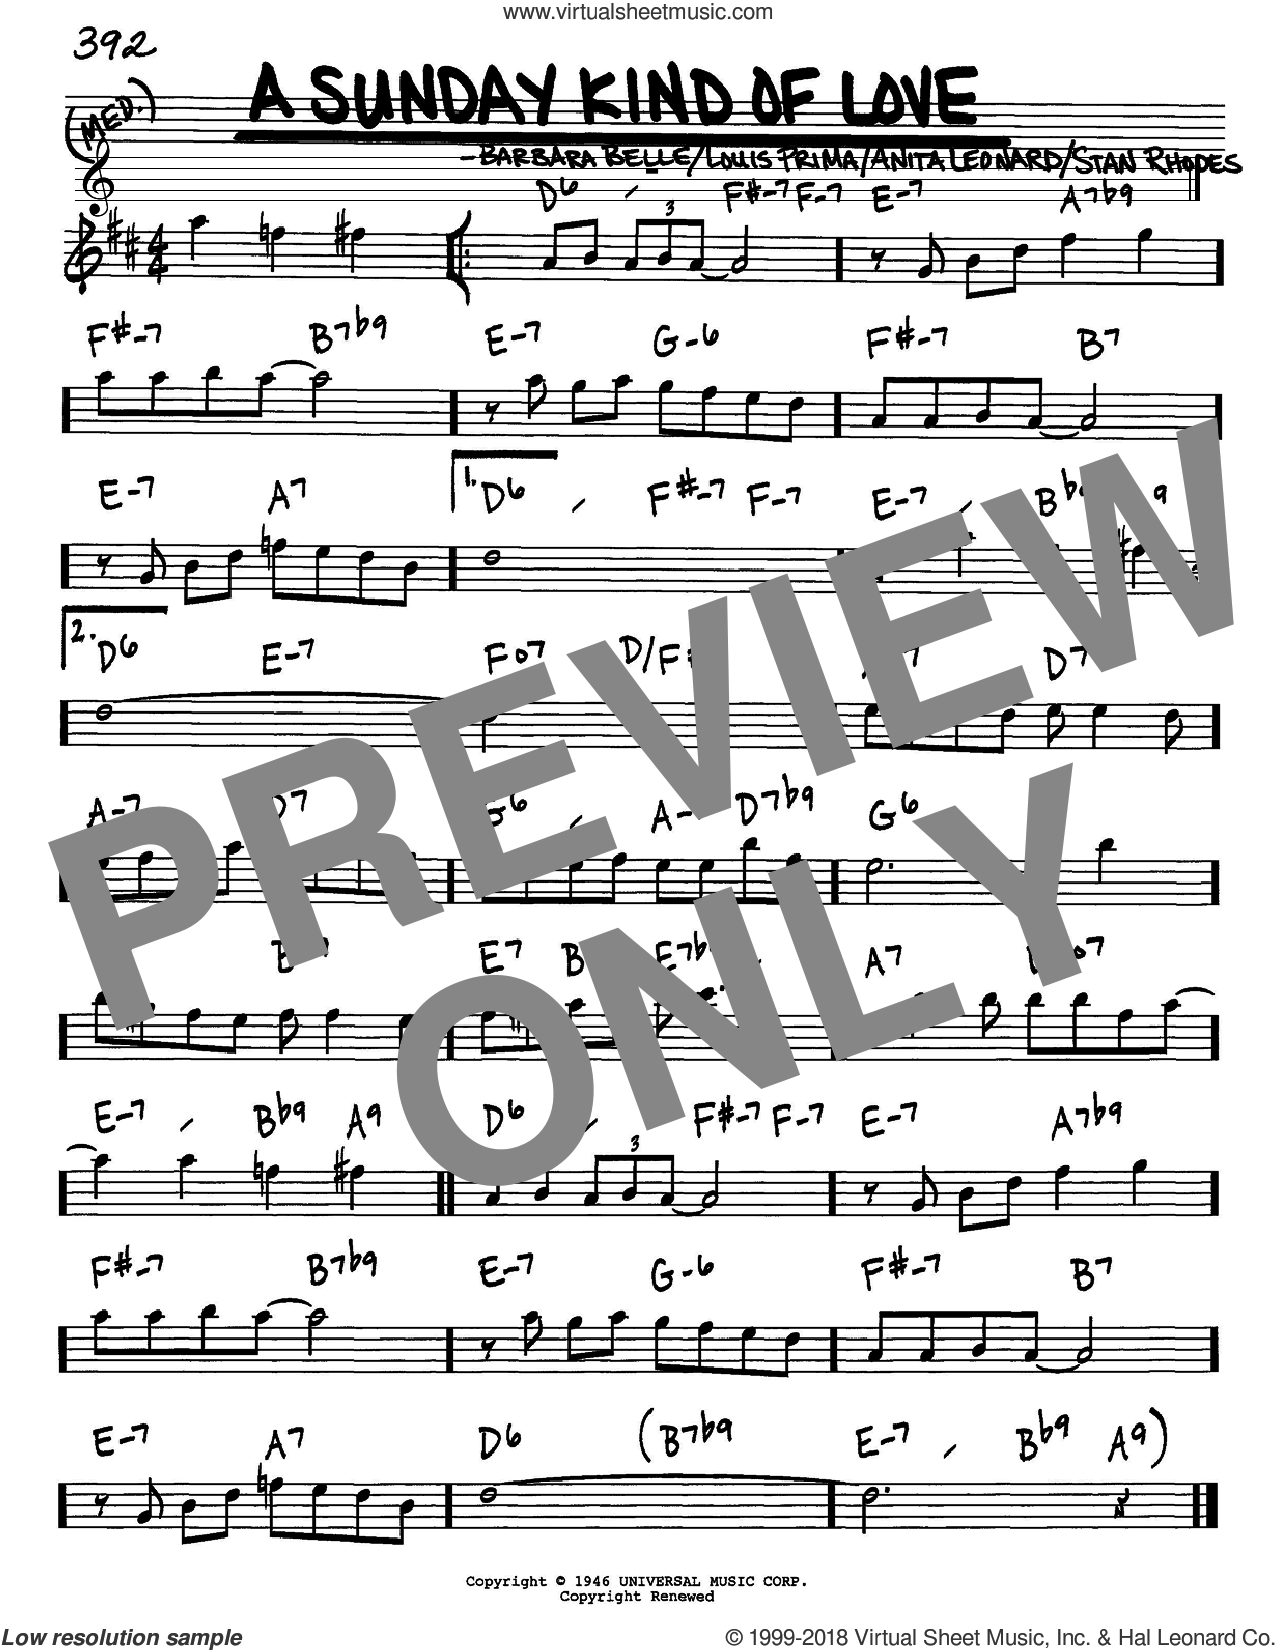 A Sunday Kind Of Love sheet music for voice and other instruments (in Eb) by Louis Prima, Anita Nye, Barbara Belle and Stan Rhodes, intermediate skill level